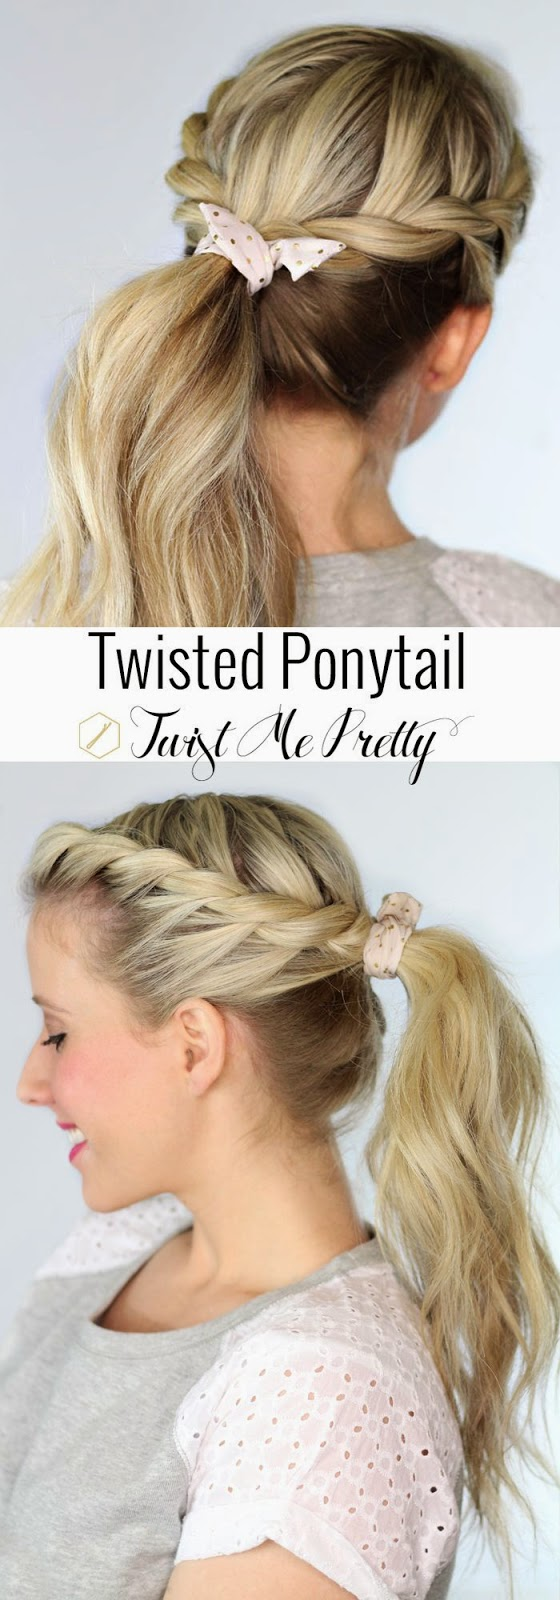 Hairstyles And Women Attire Top 5 Wonderful Hairstyles Tutorial